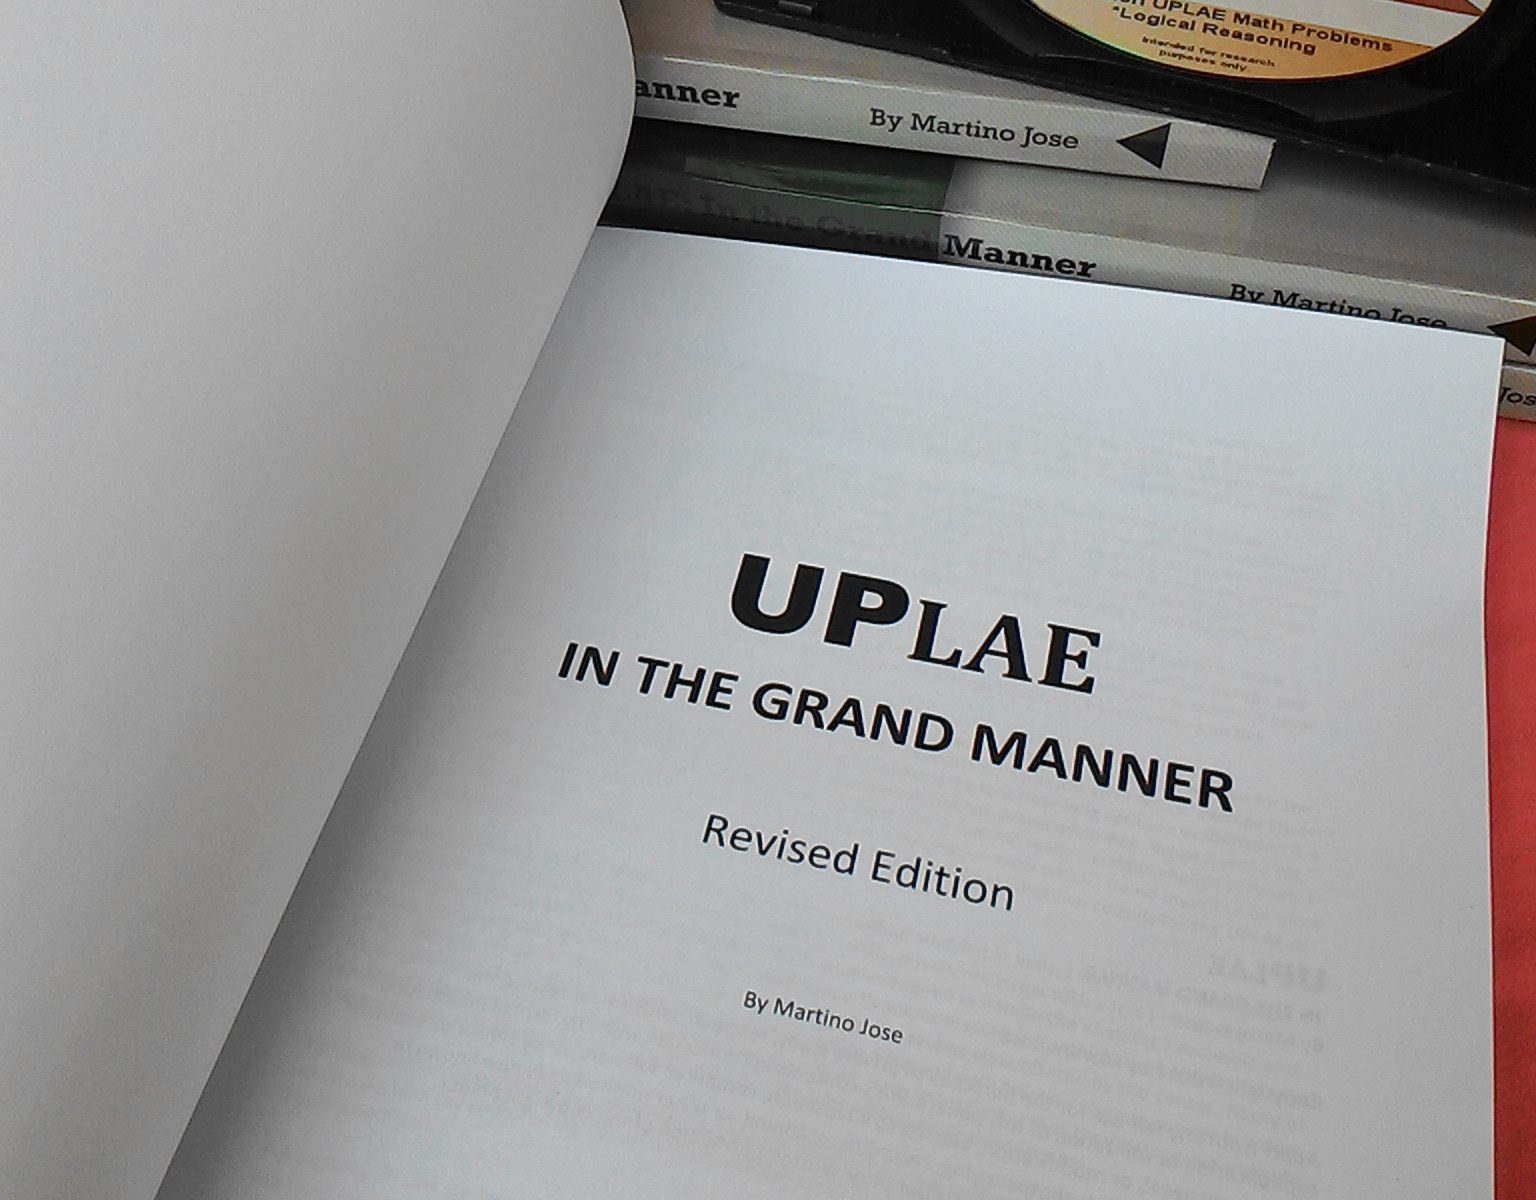 UPLAE, UP LAE, University of the Philippines, UP College of Law, University of the Philippines College of Law, Law reviewers, UPLAE reviewers, UP Law, UP Law Aptitude Examination, LAE Review, philsat, PhiLSAT, Philippine Law School Admission Test, College of Law Entrance Exam